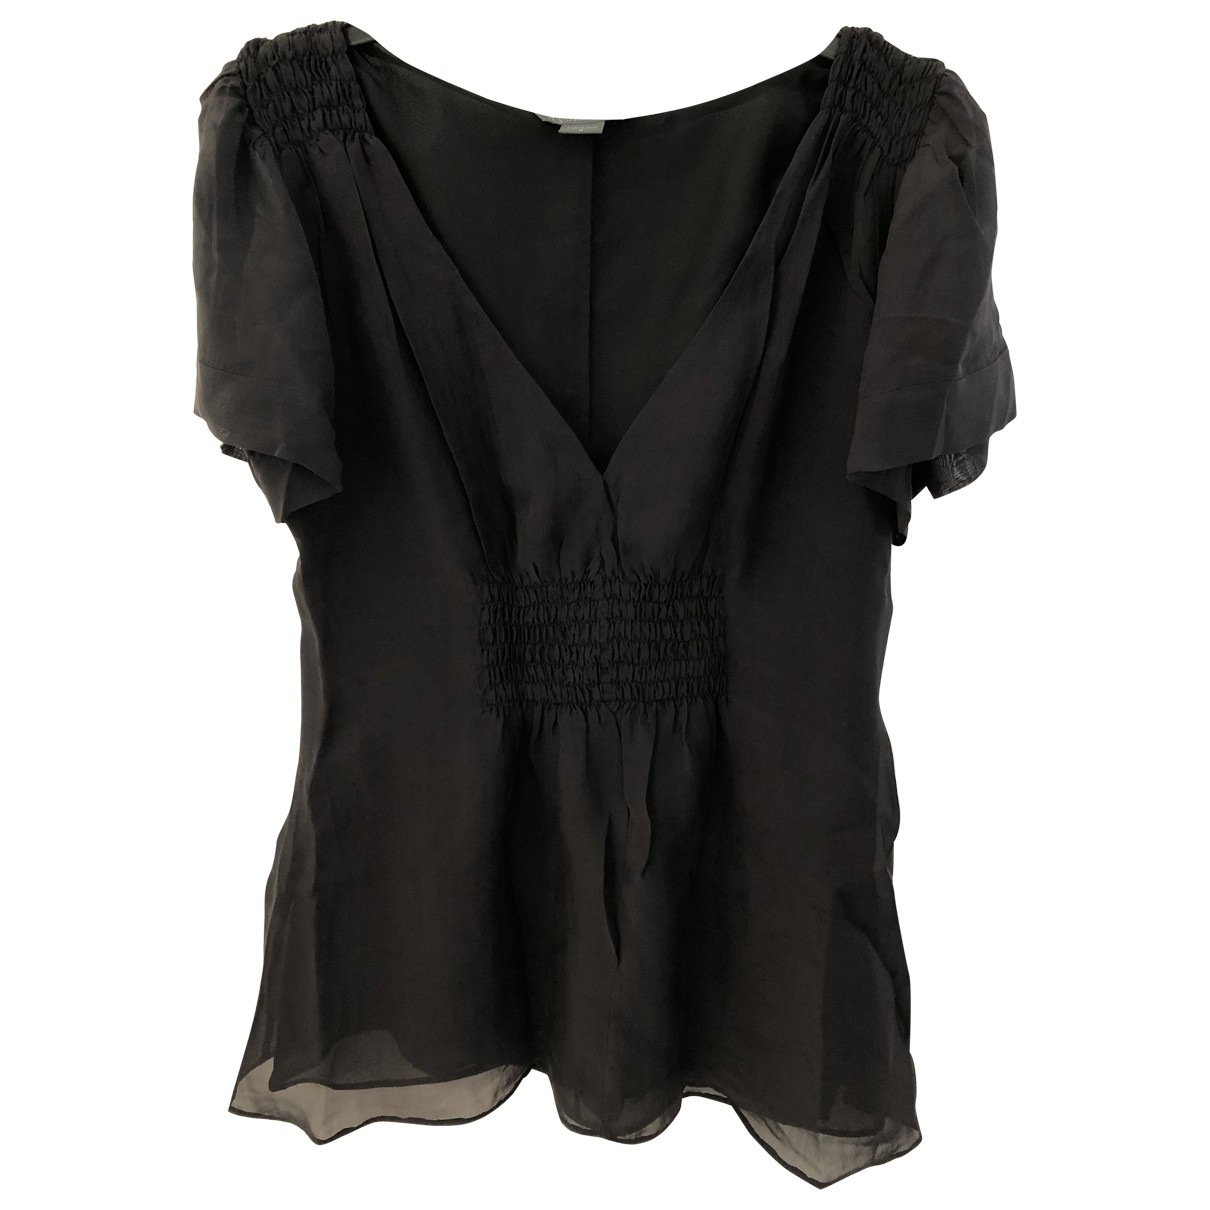 Emporio Armani \N  top for Women M International